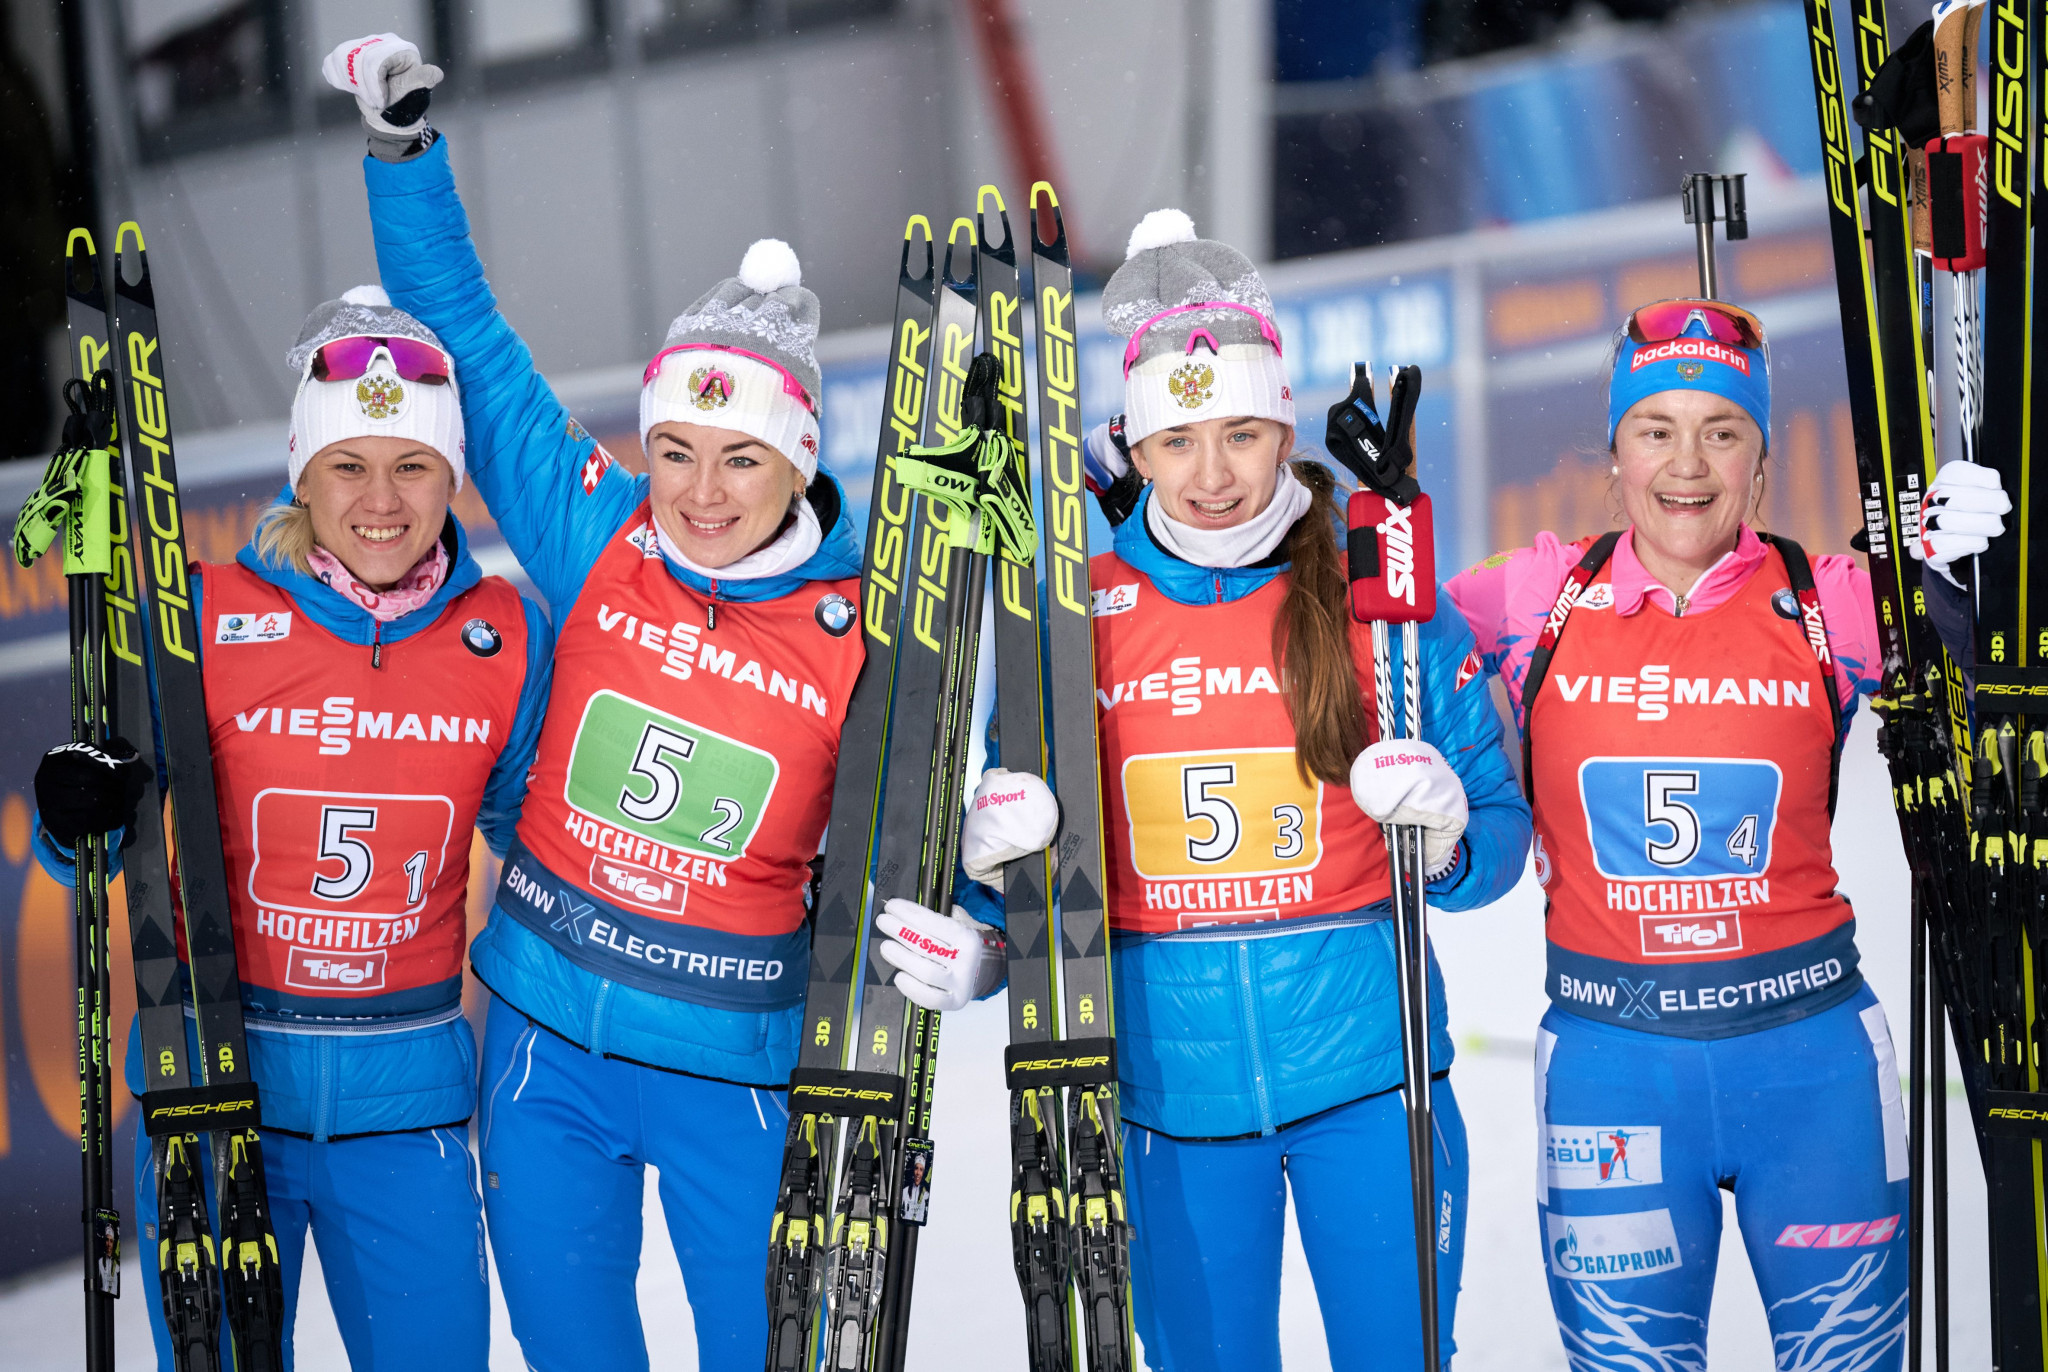 Kristina Reztsova, left, was part of Russia's women's 4x6km relay team that finished second in Hochfilzen last year ©Getty Images